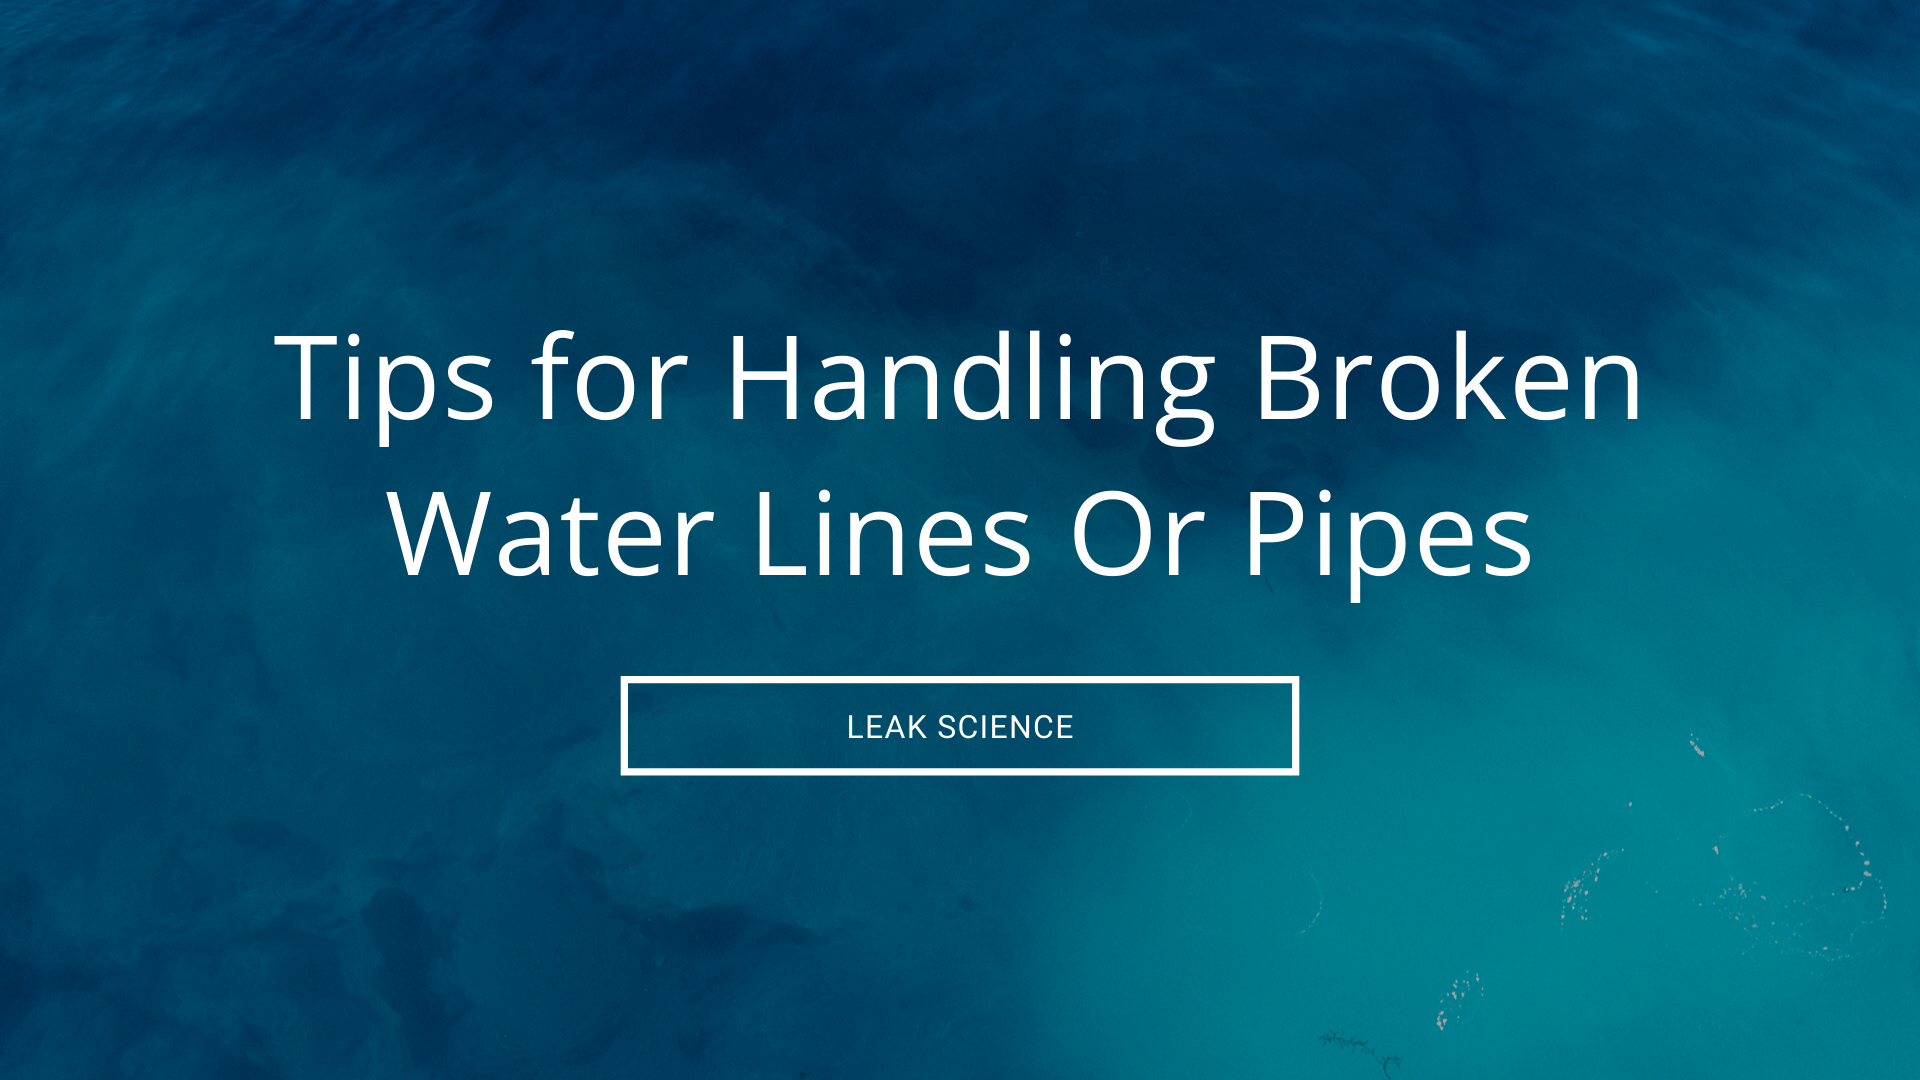 Tips for Handling Broken Water Lines Or Pipes